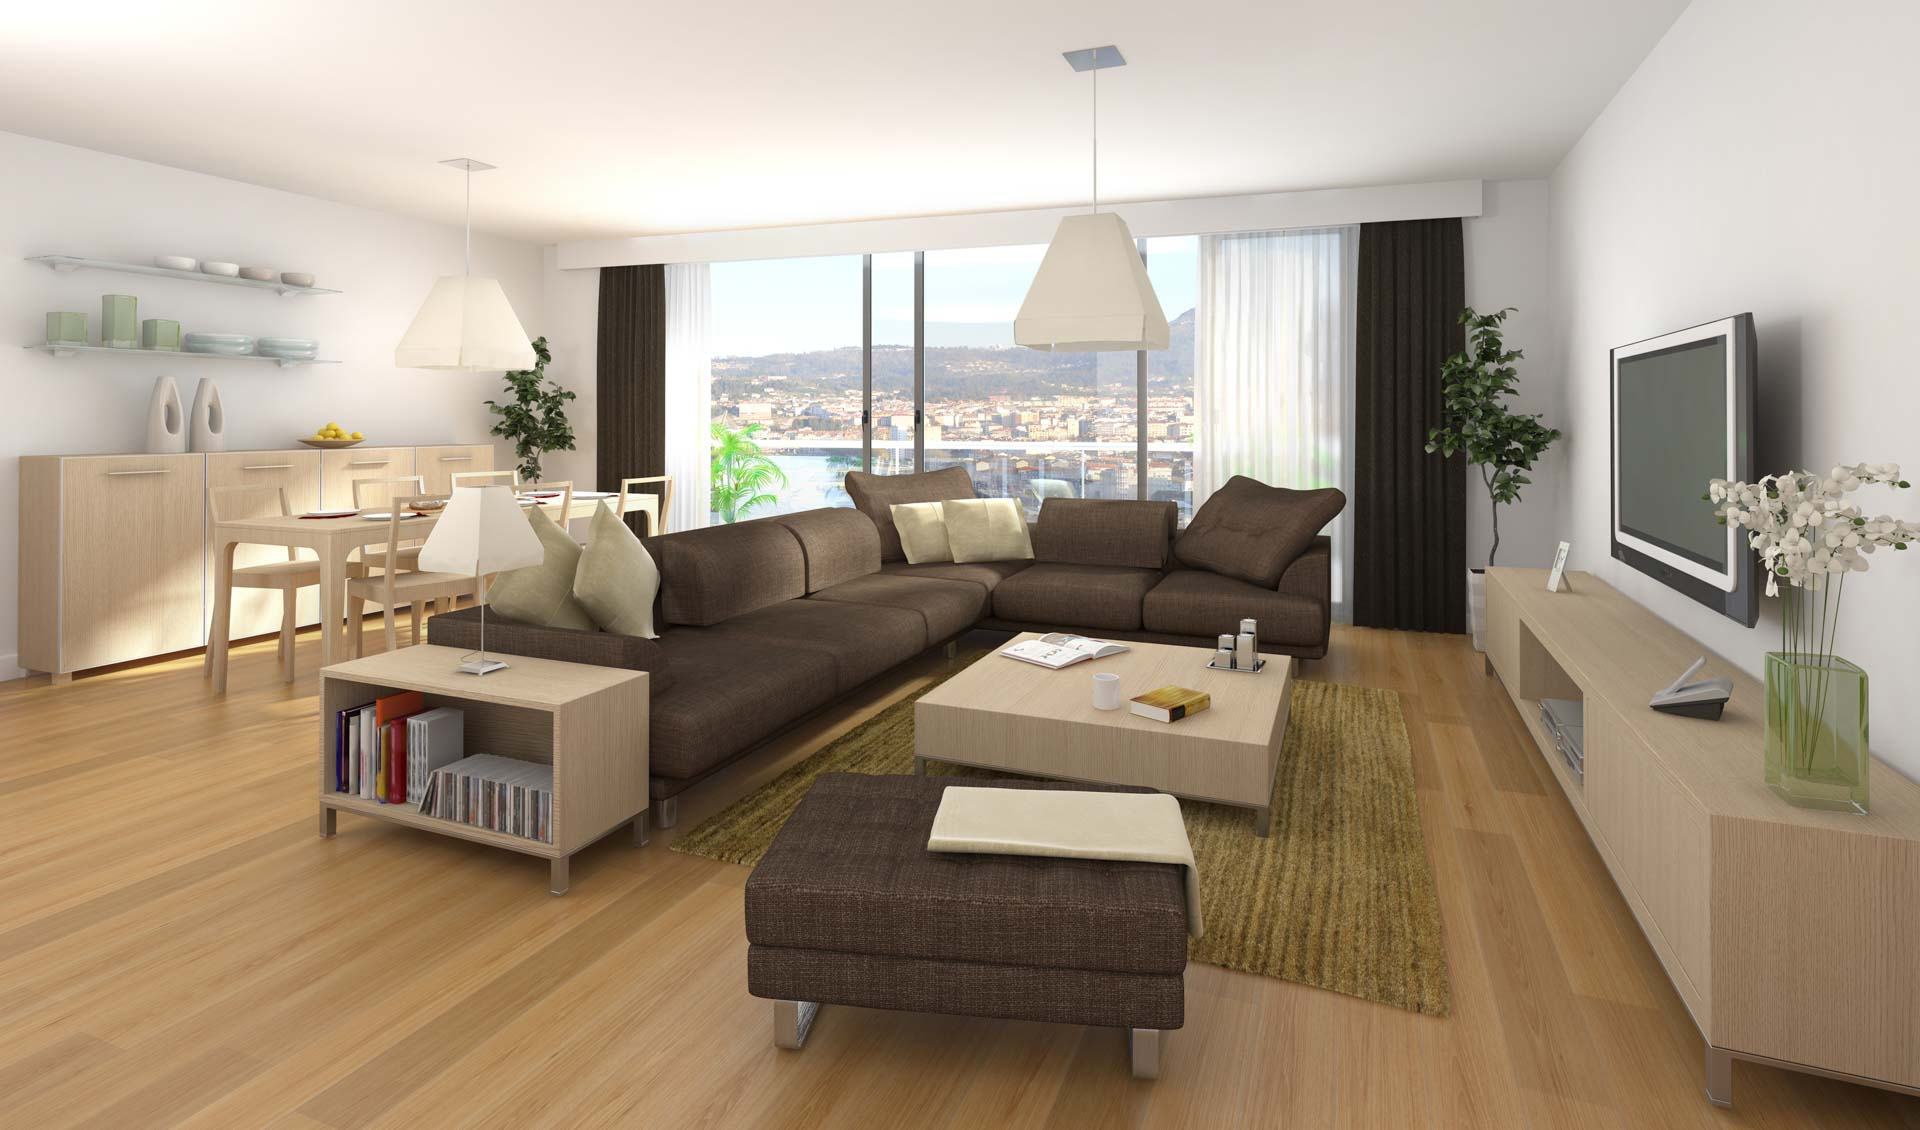 Modernized living room with sofa and furnitures